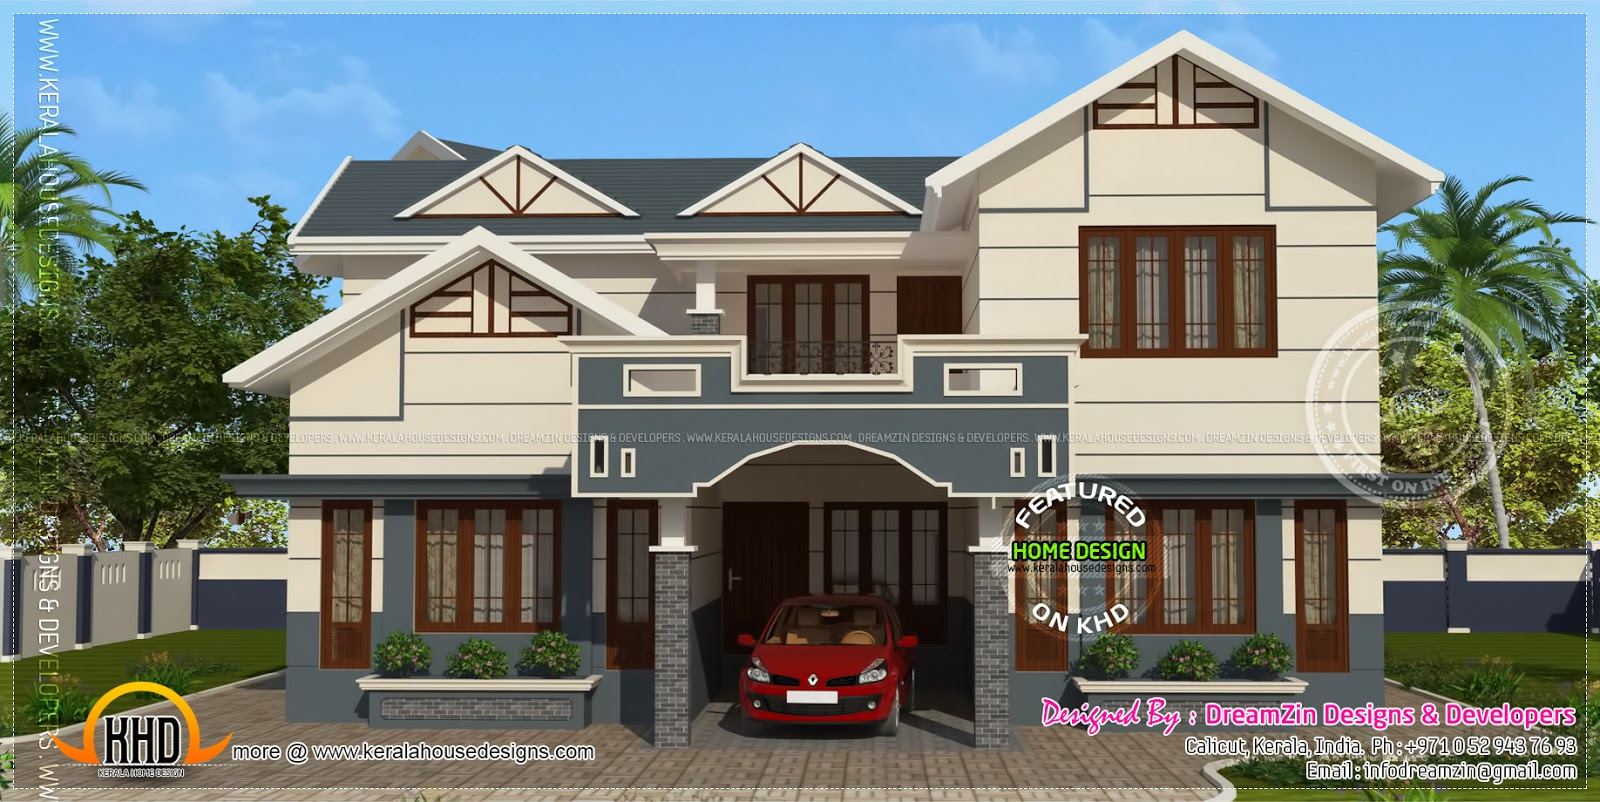 house elevatiion 01 - 36+ Front Elevation Designs For Small Houses Ground Floor Gif